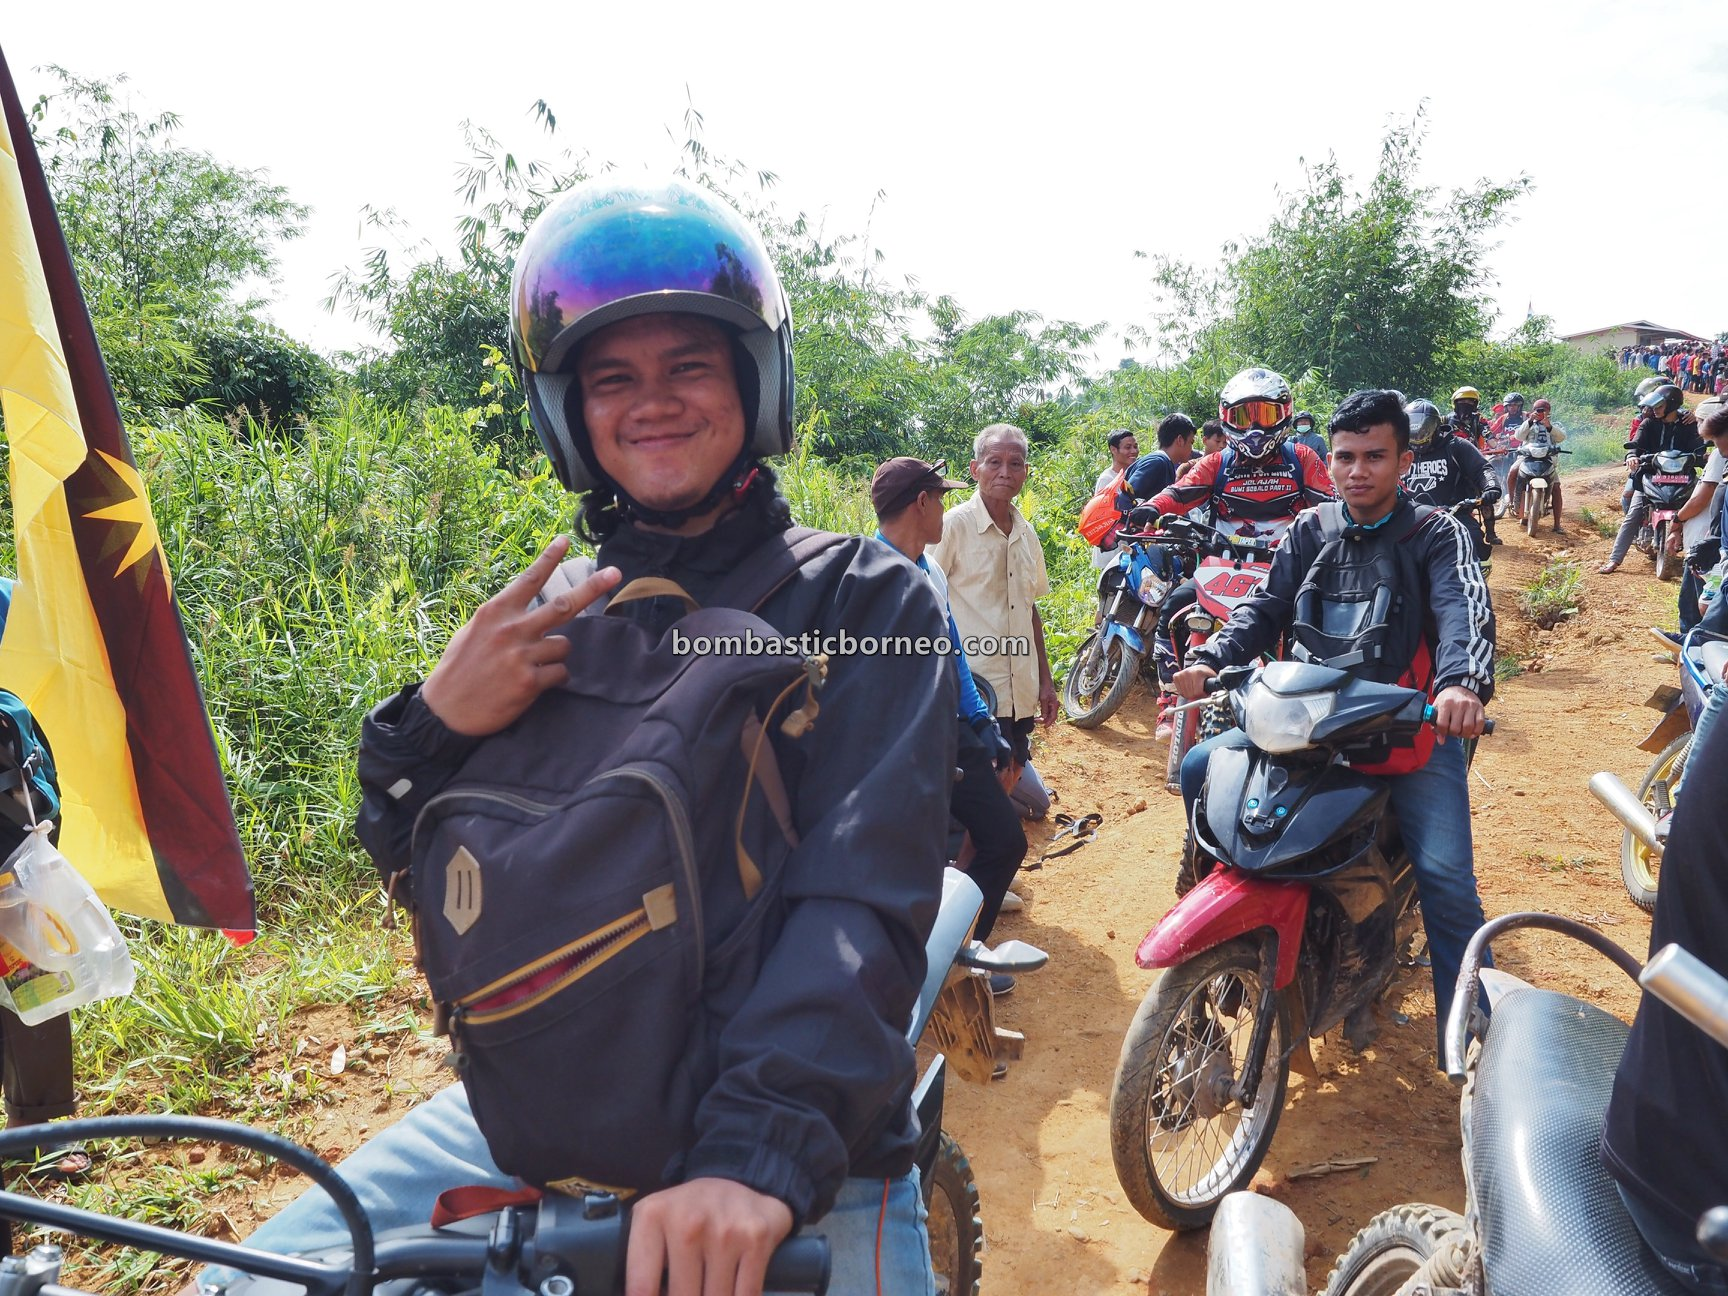 Dusun Anep, adventure, motorbike ride, traditional, Indonesia, West Kalimantan, Siding, native, village, wisata budaya, Tourism, travel guide, Borneo, 印尼西加里曼丹, 孟加映宋宫部落,